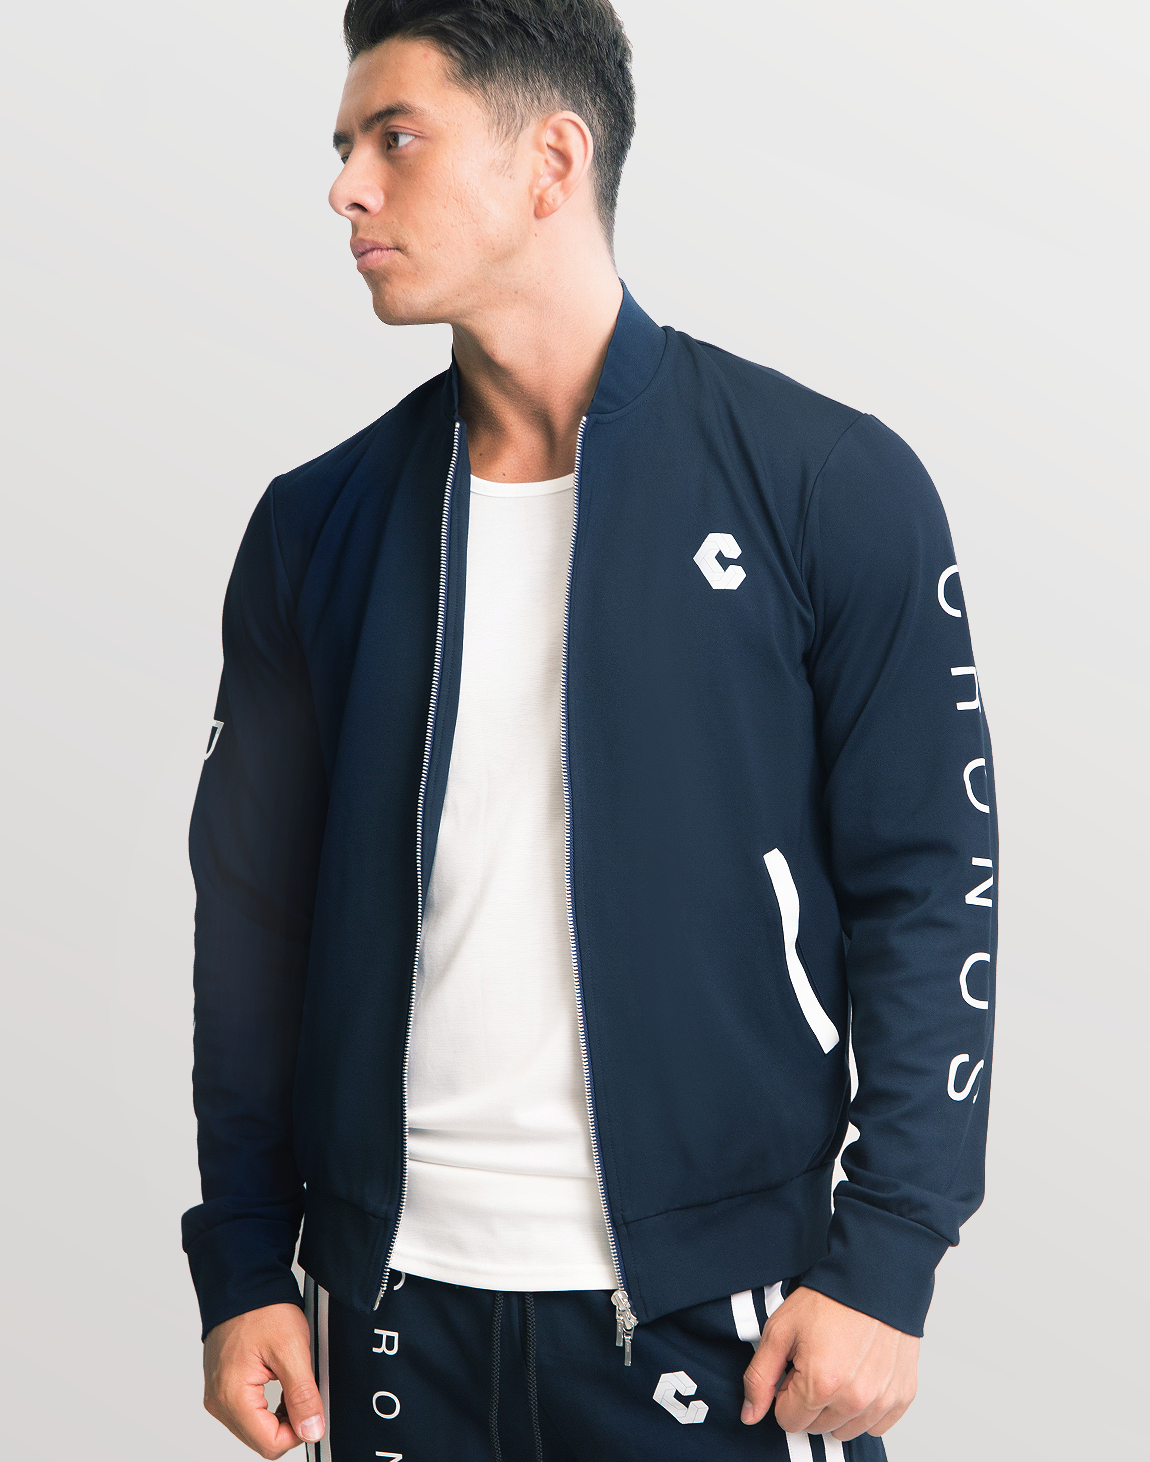 <img class='new_mark_img1' src='//img.shop-pro.jp/img/new/icons1.gif' style='border:none;display:inline;margin:0px;padding:0px;width:auto;' />MODE BACK 2 STRIPE BLOUSON 02 NAVY